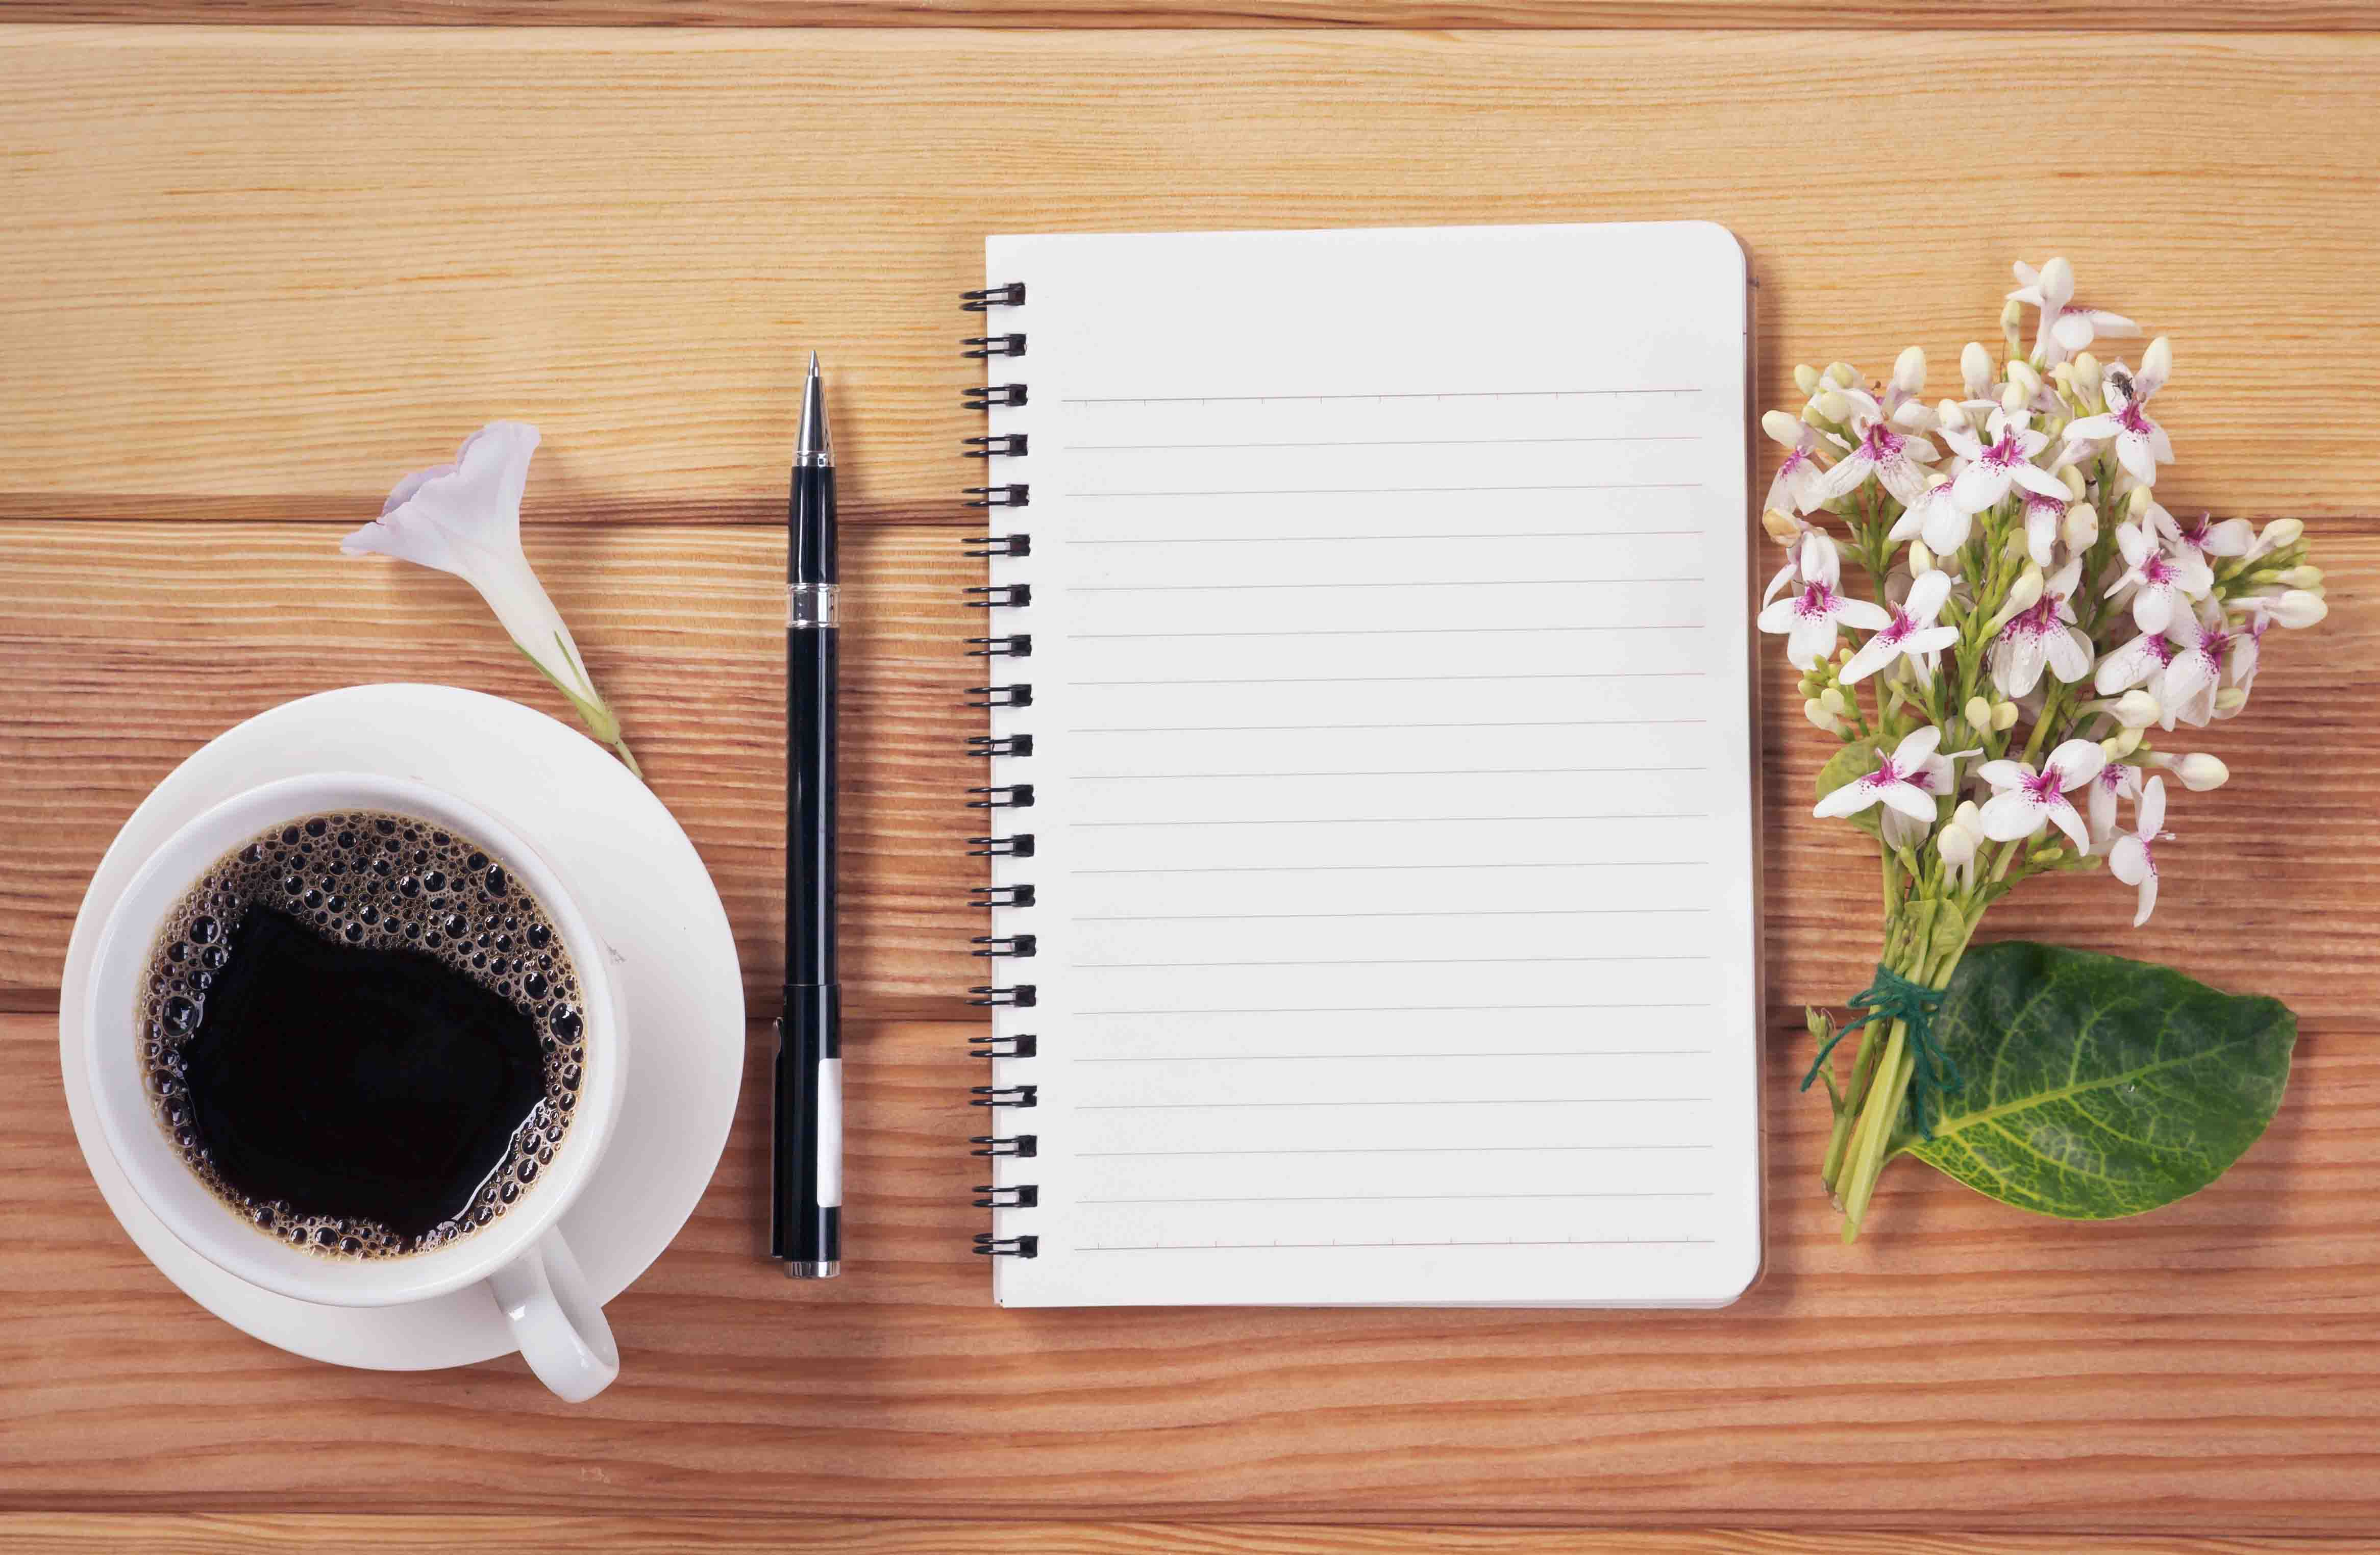 Why Keeping An Idea Journal Could Actually Make You Smarter